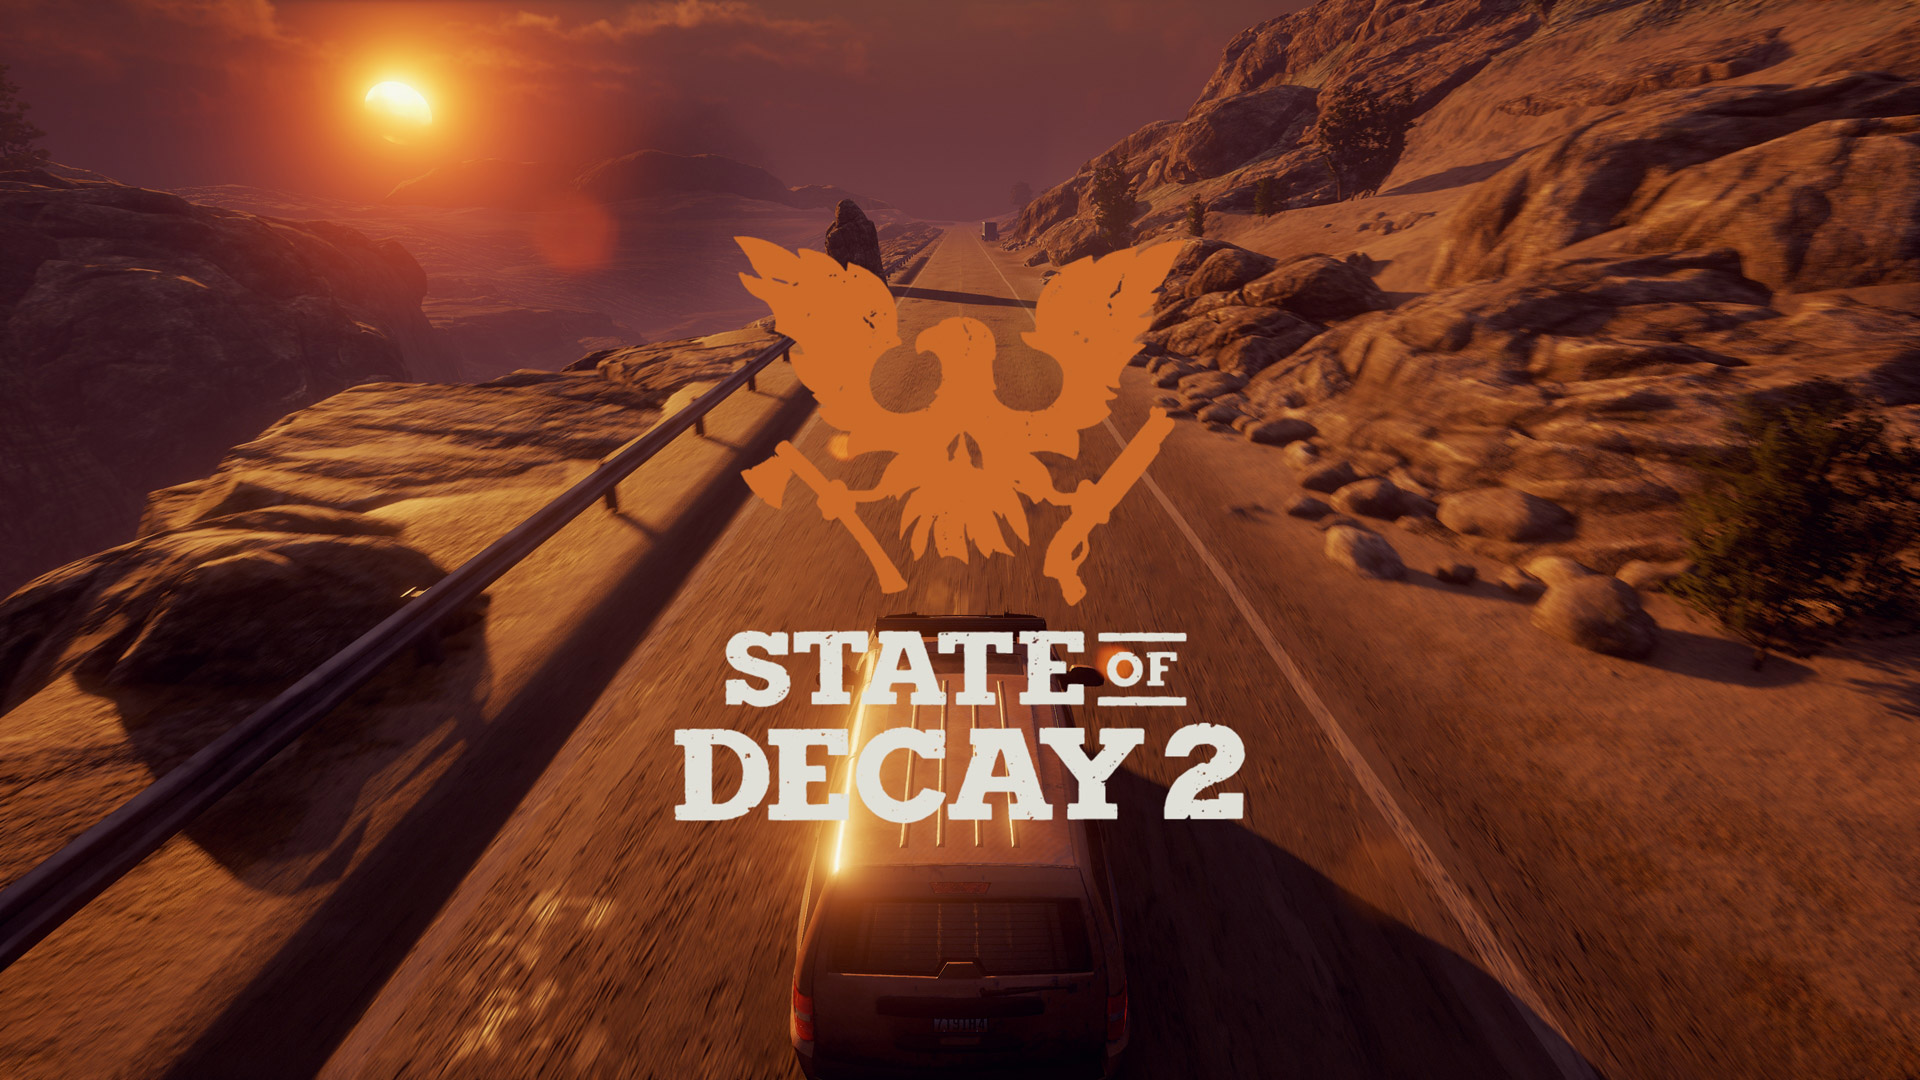 Free State of Decay 2 Wallpaper in 1920x1080